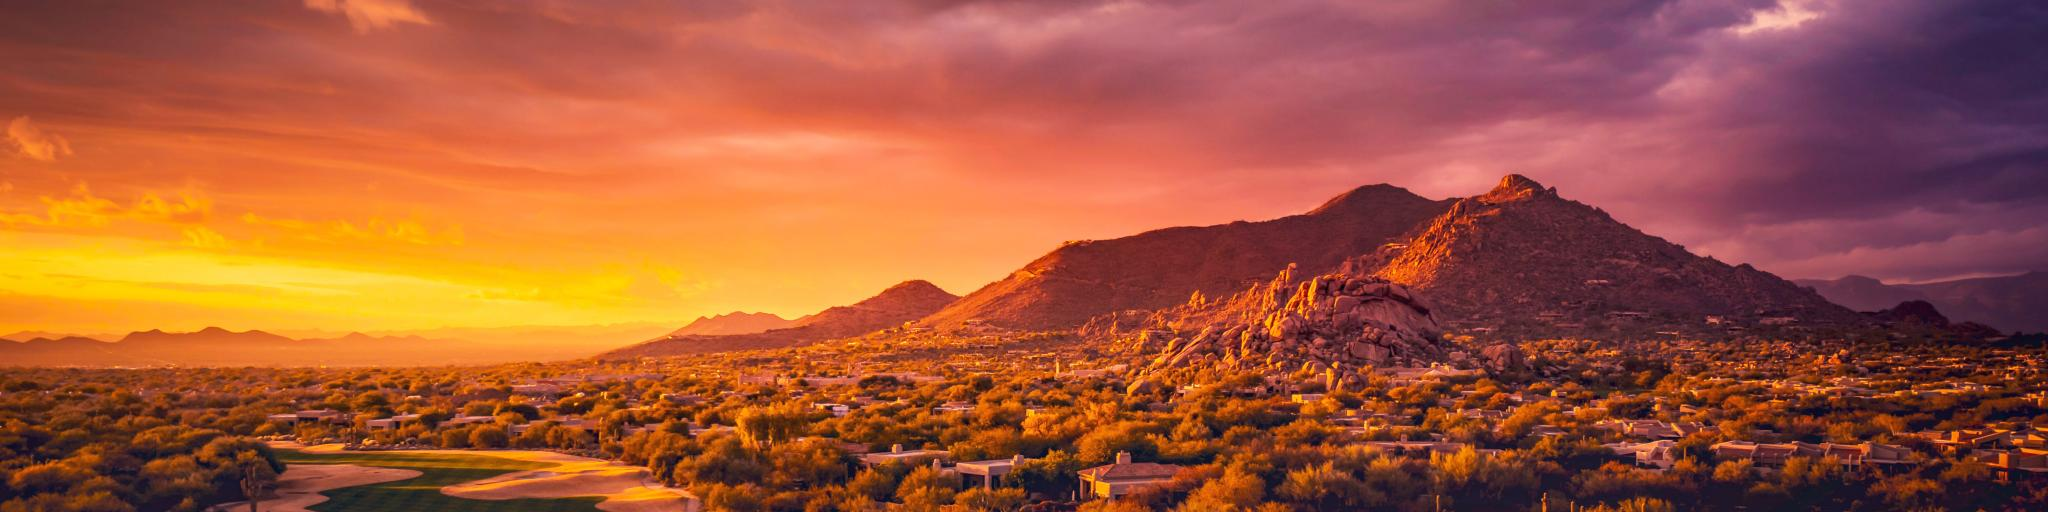 A panoramic view of the beautiful golden hour illuminating the desert of Scottsdale Arizona